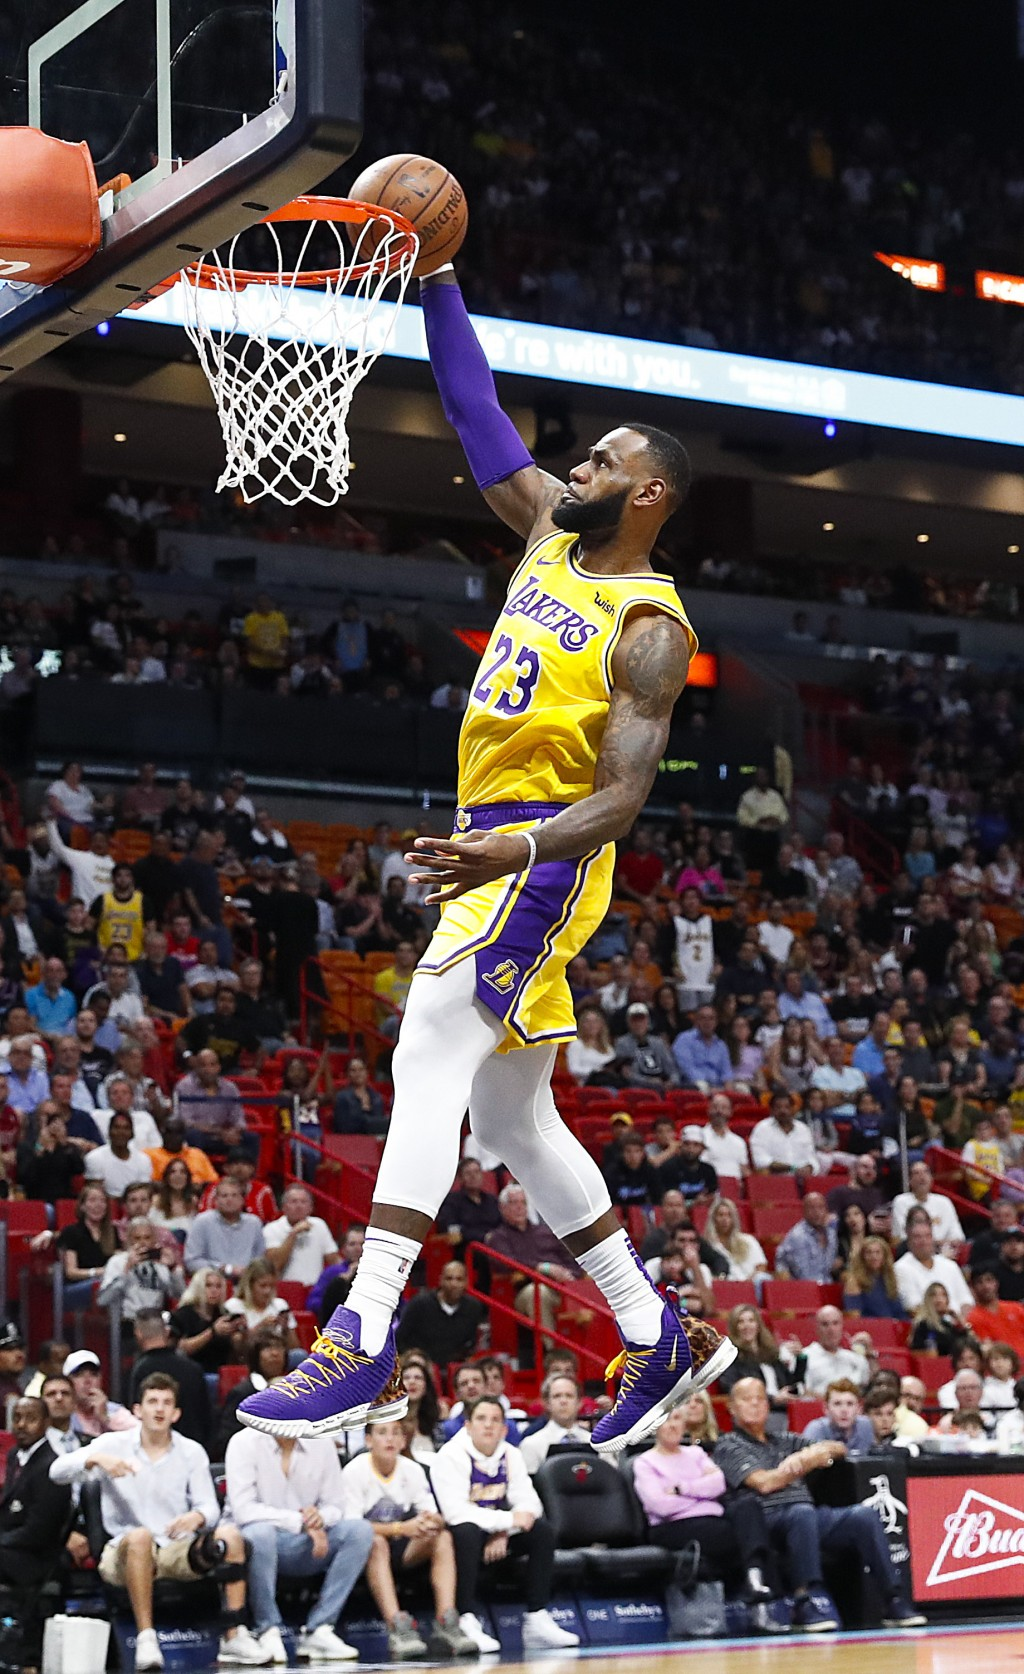 Los Angeles Lakers forward LeBron James scores during the first quarter of an NBA basketball game against the Miami Heat, Sunday, Nov. 18, 2018, in Mi...